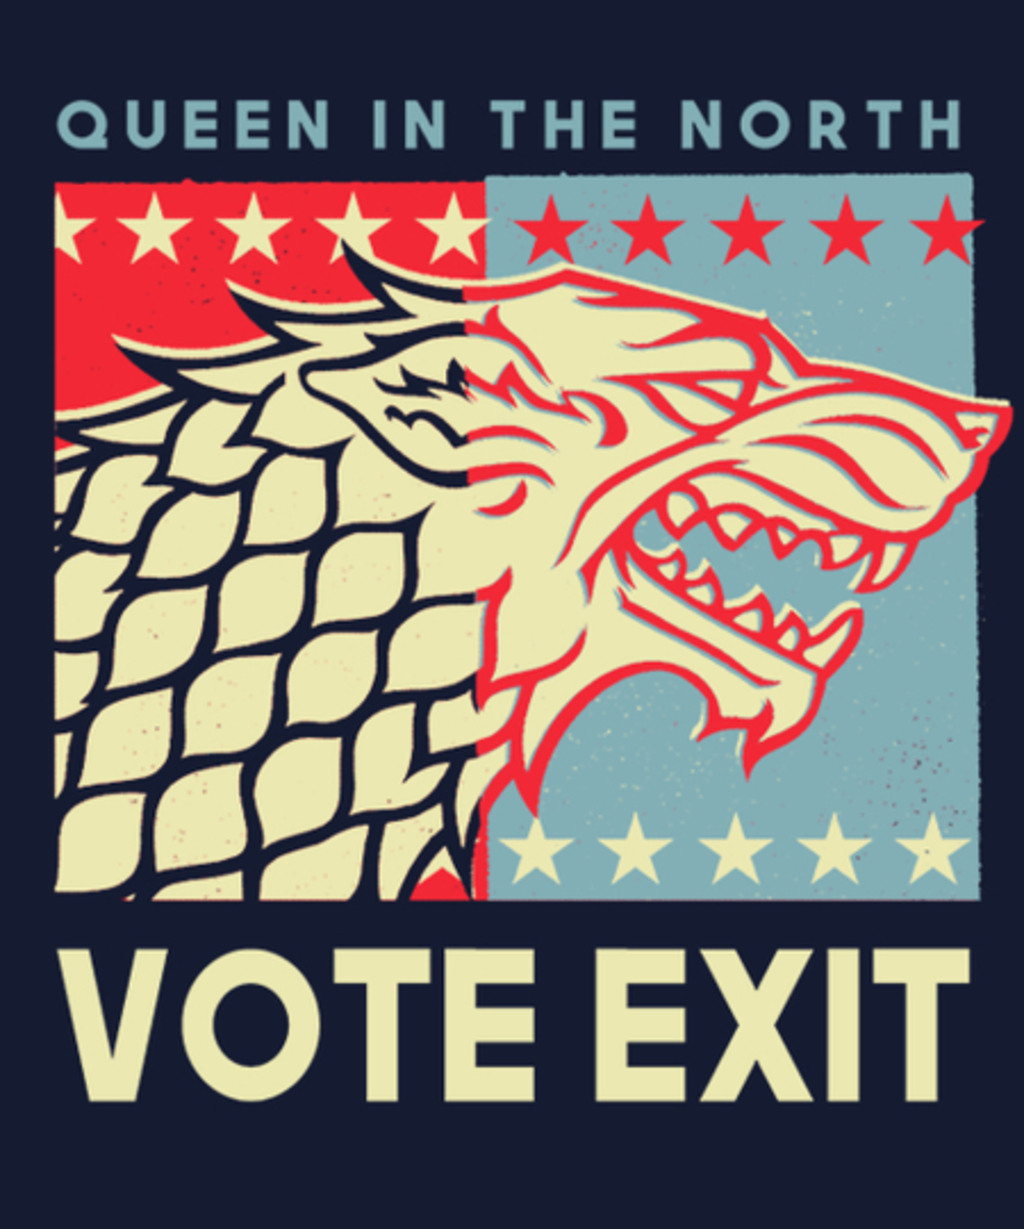 Qwertee: Queen in the north